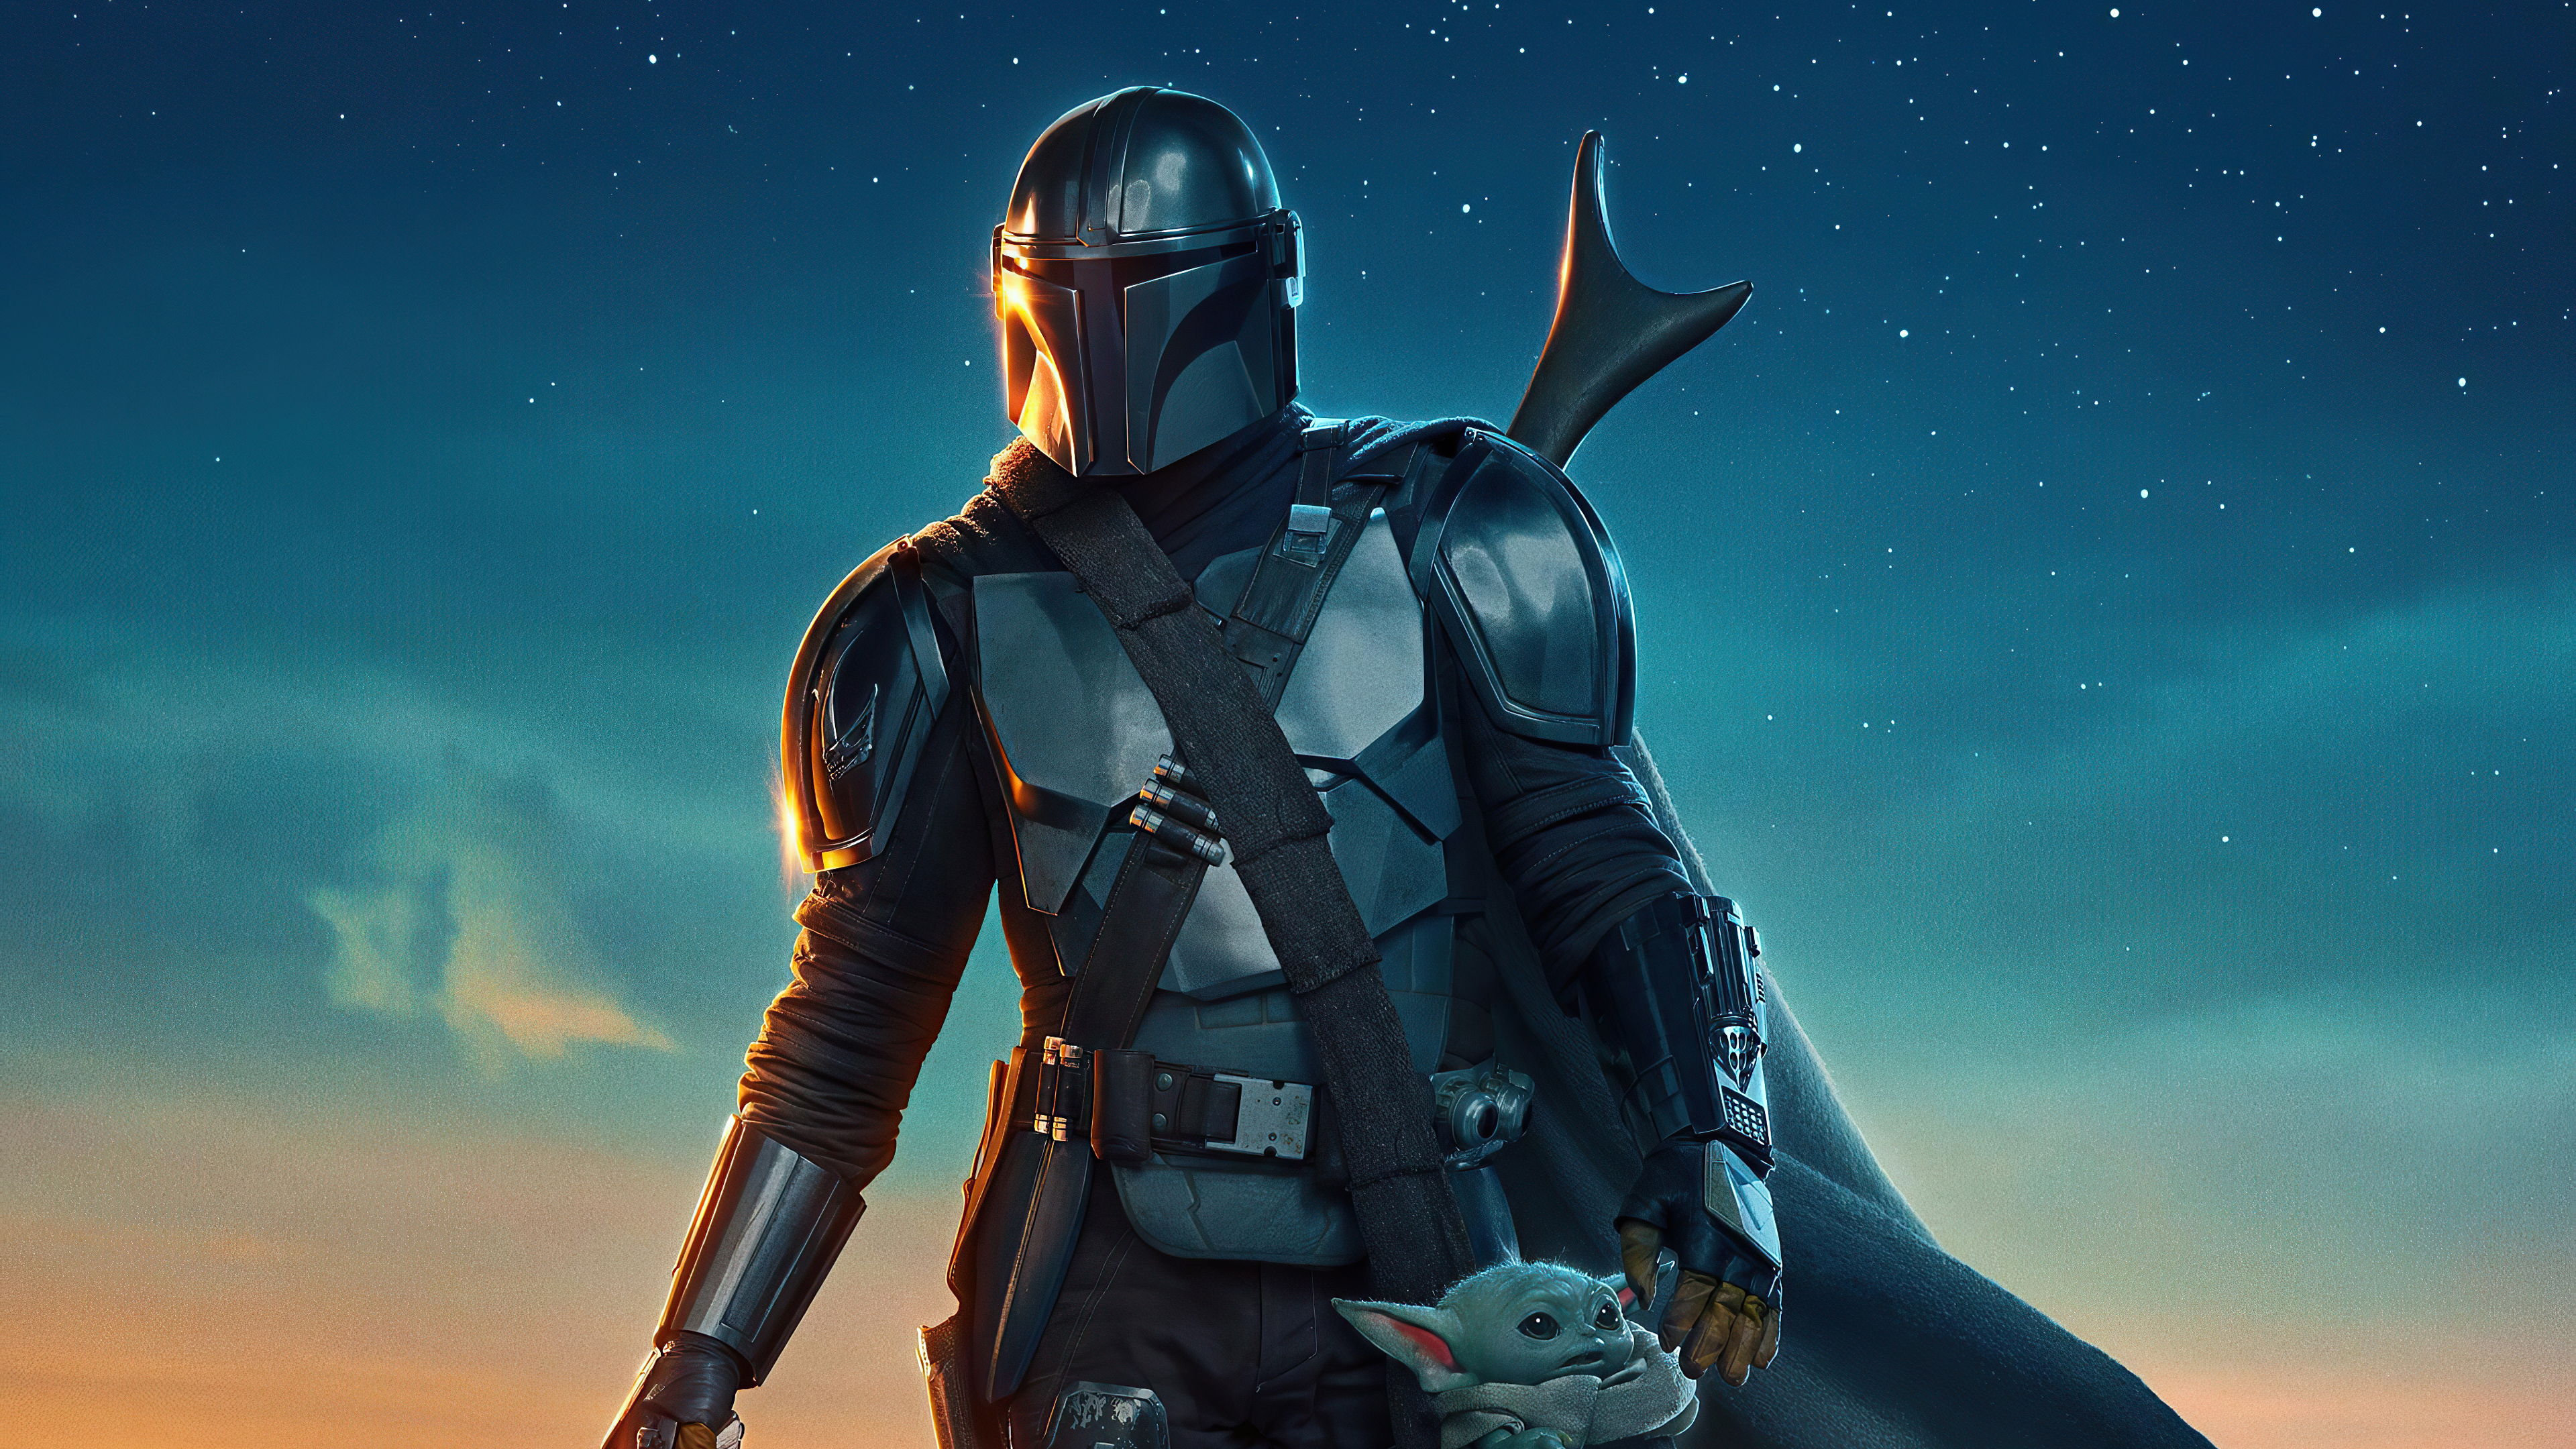 The Mandalorian Season 2 Wallpaper 4k Ultra Hd Id 6319